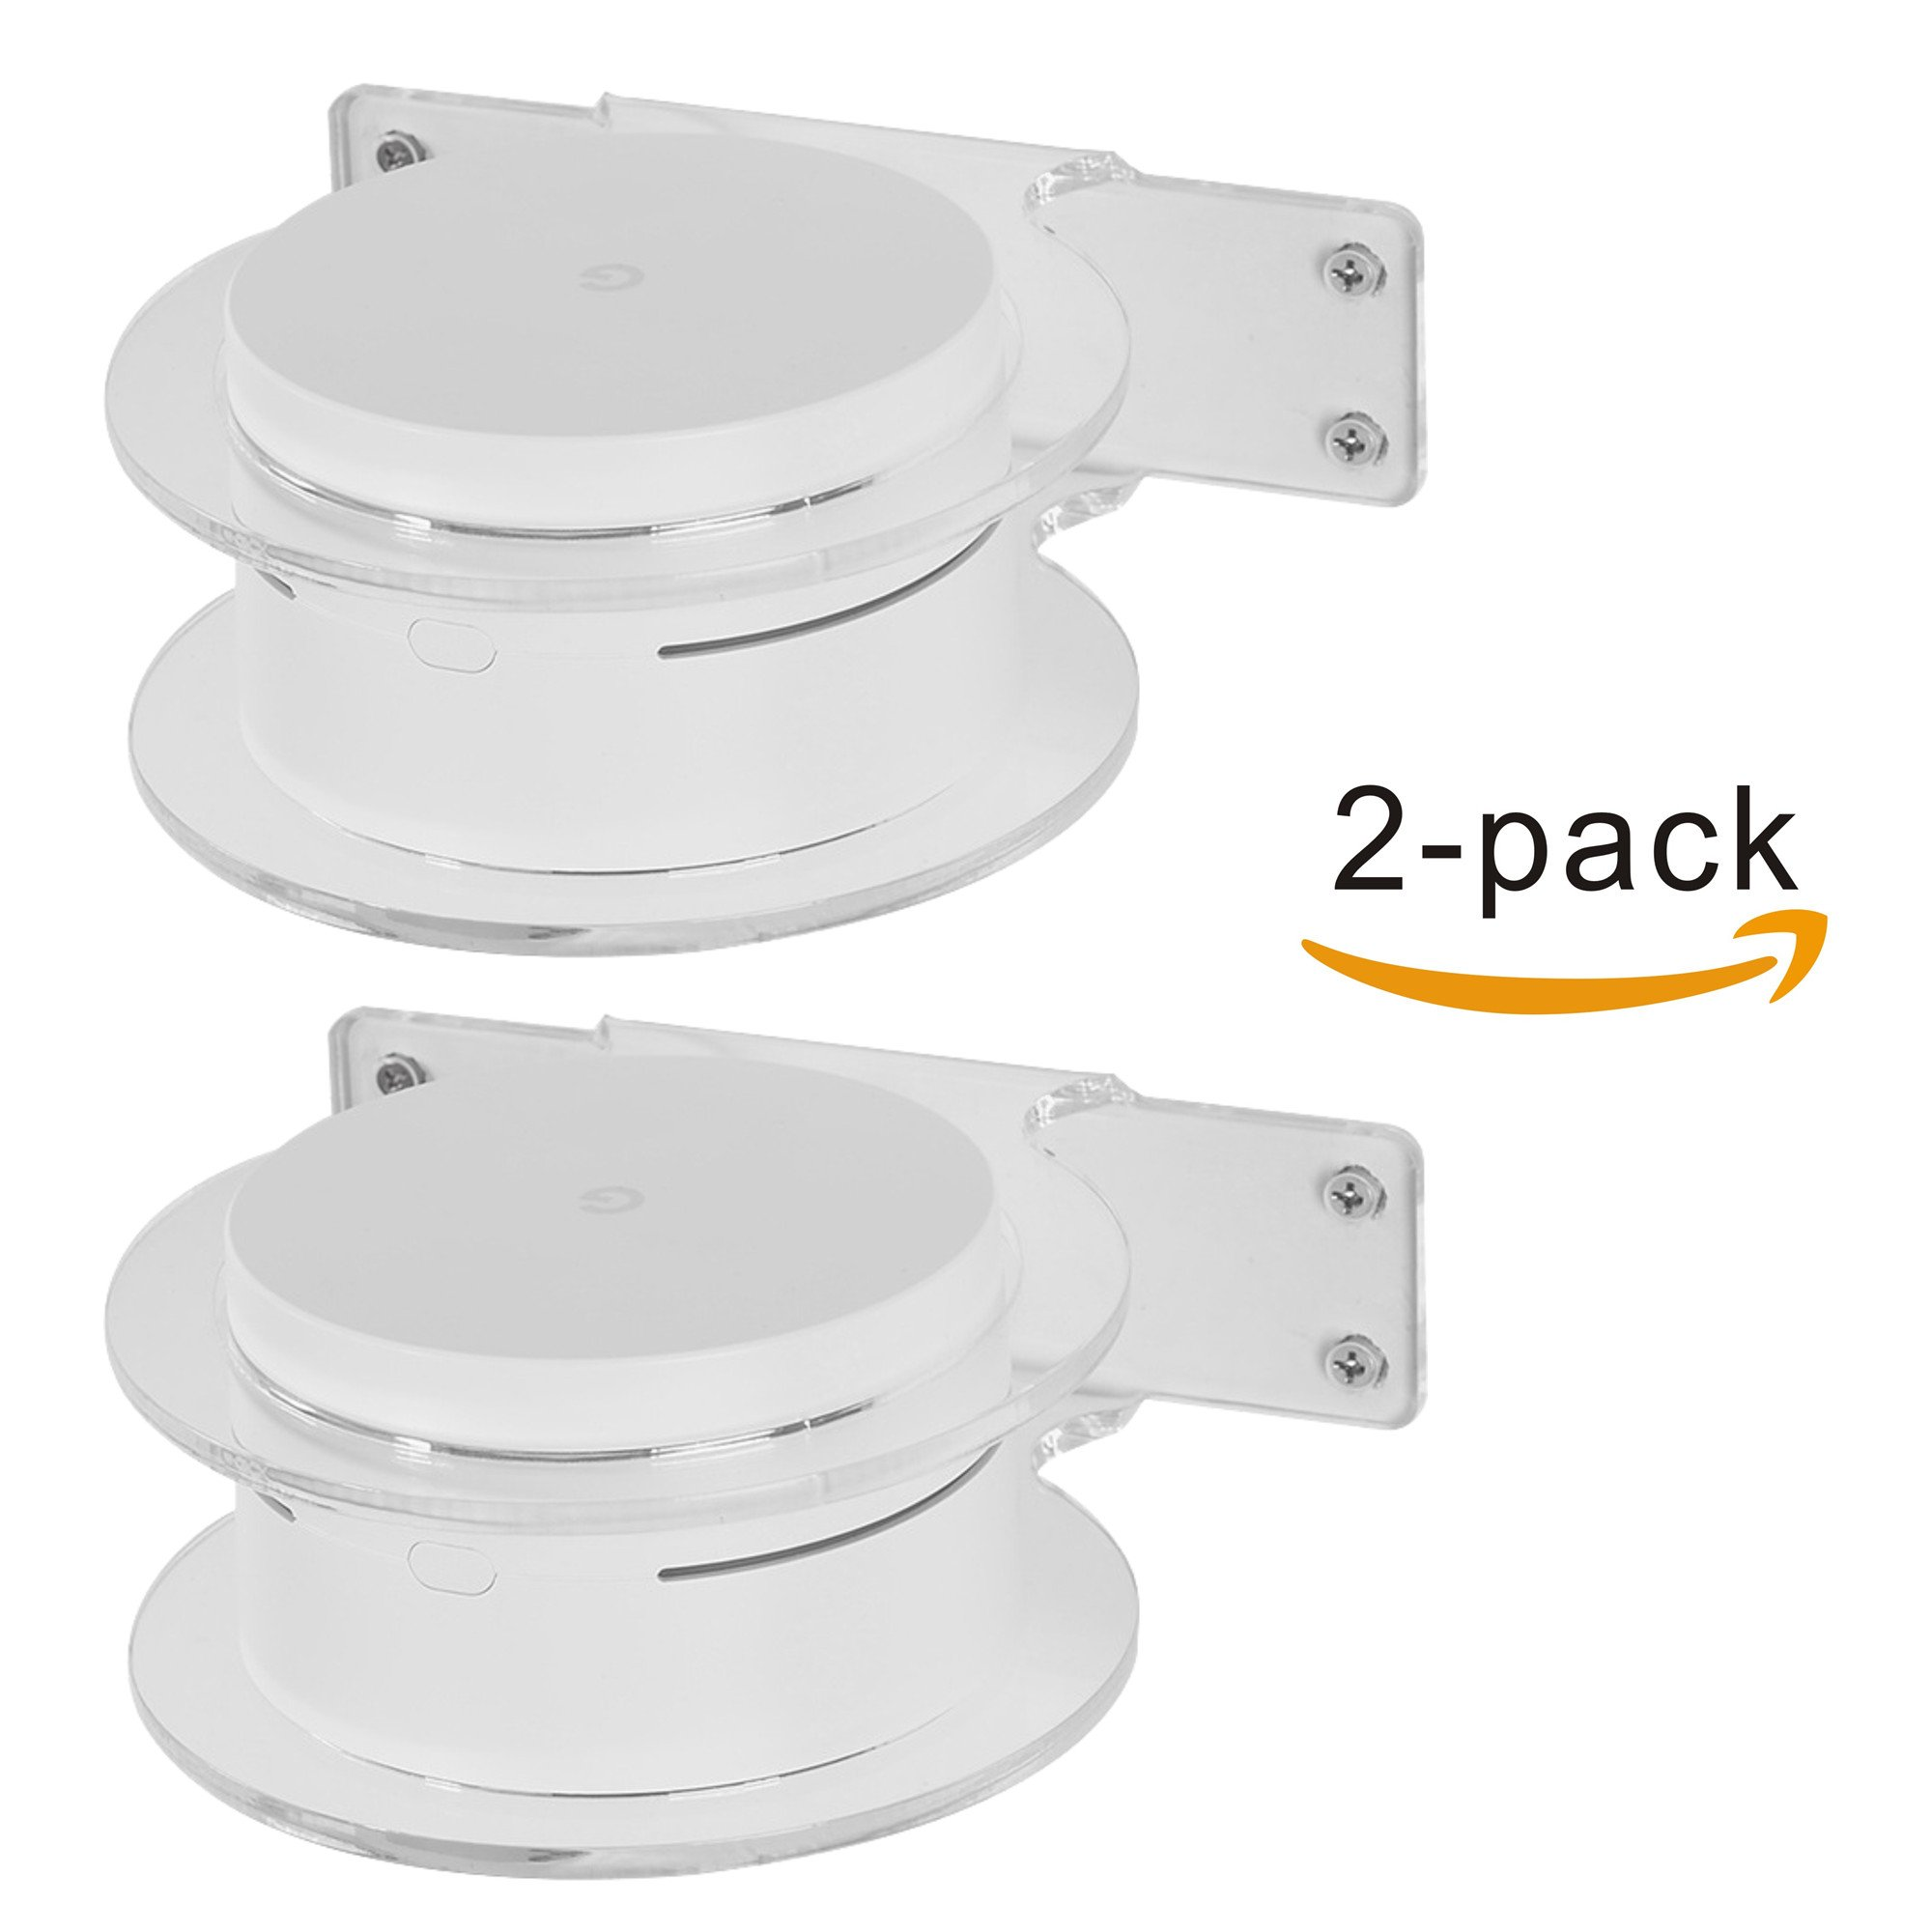 Google WiFi Outdoor Mount Holder Stand Bracket Google WiFi System Router Replacement Whole-Home Coverage (2 Pack)